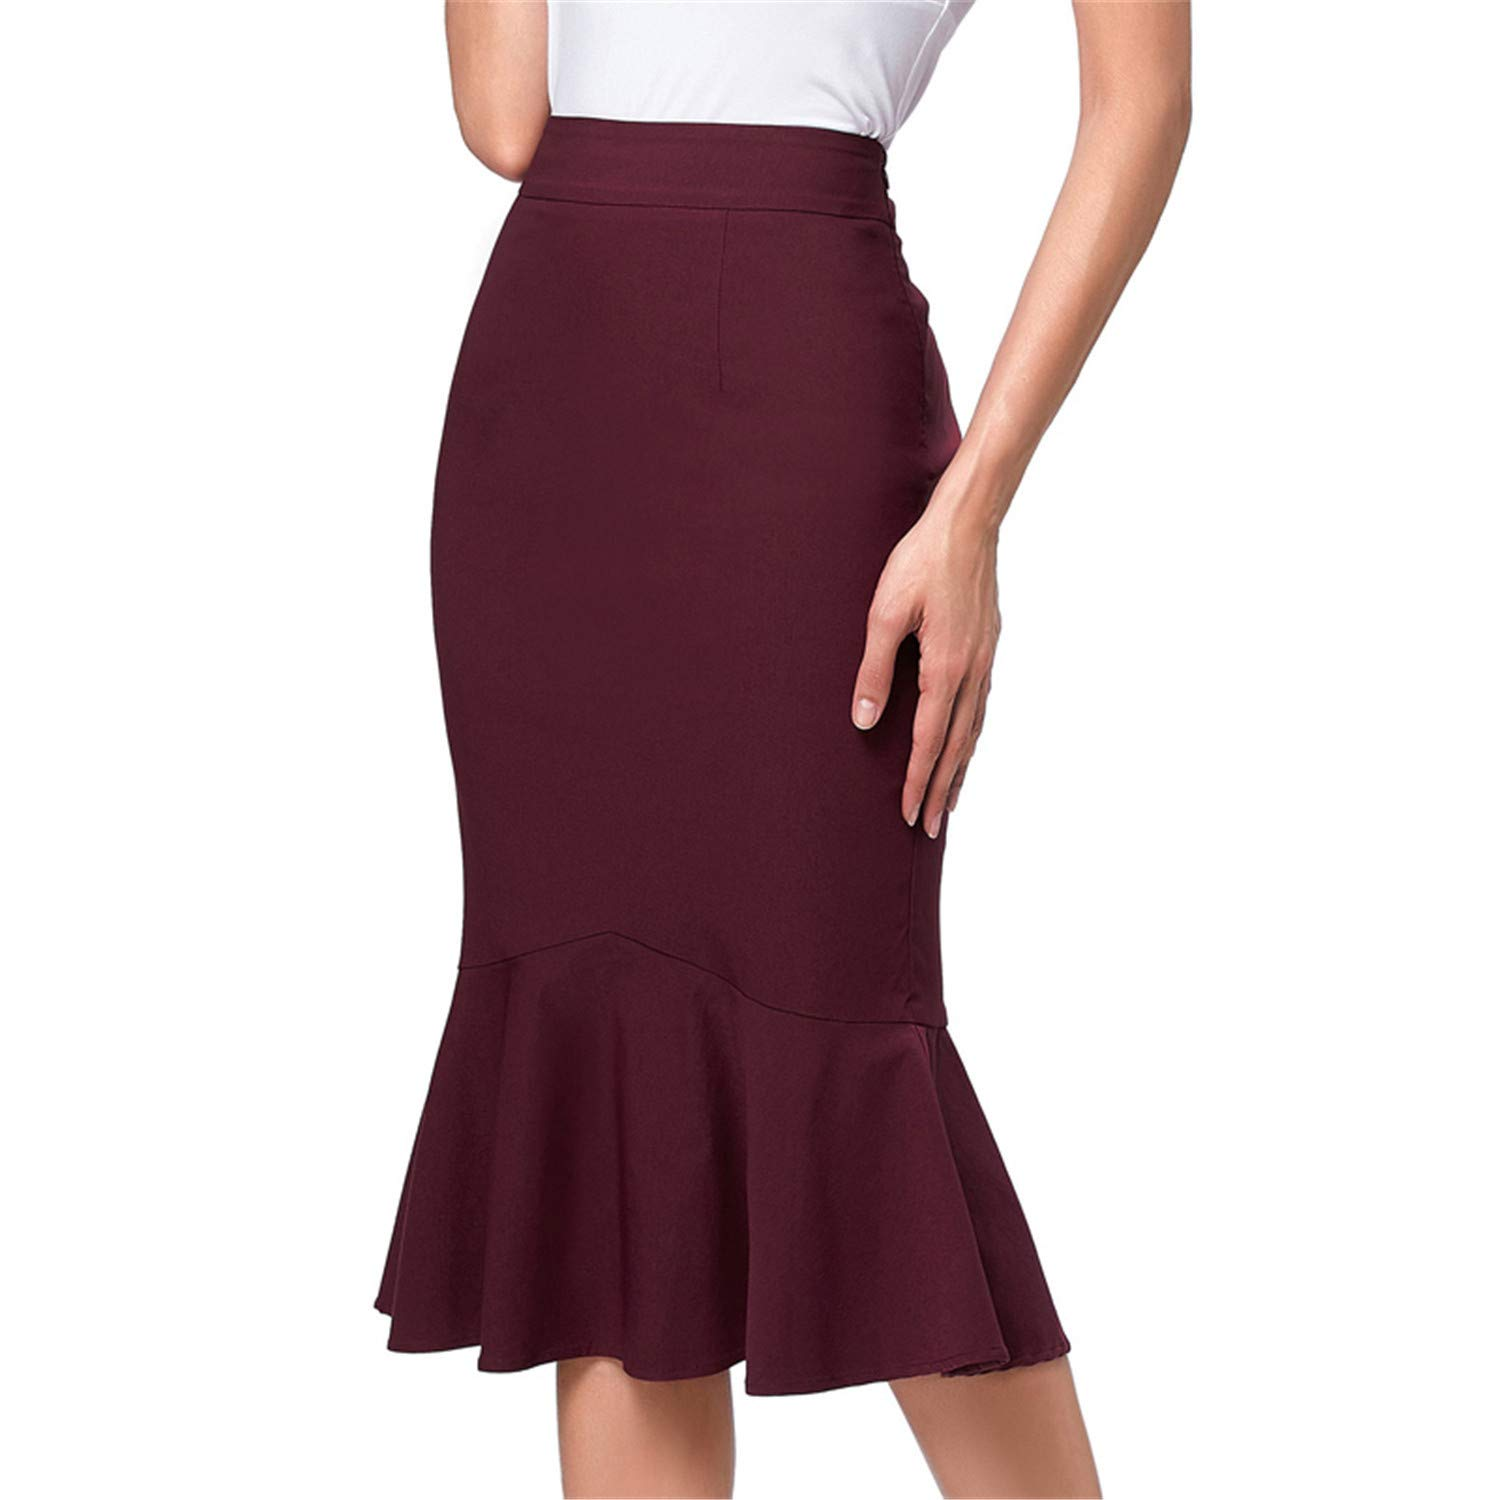 d141cddce48c Amazon.com: OL Office Skirts Womens Bodycon Midi Skirt Ruffles Pencil  Mermaid Skirts Party Formal Occasion: Clothing